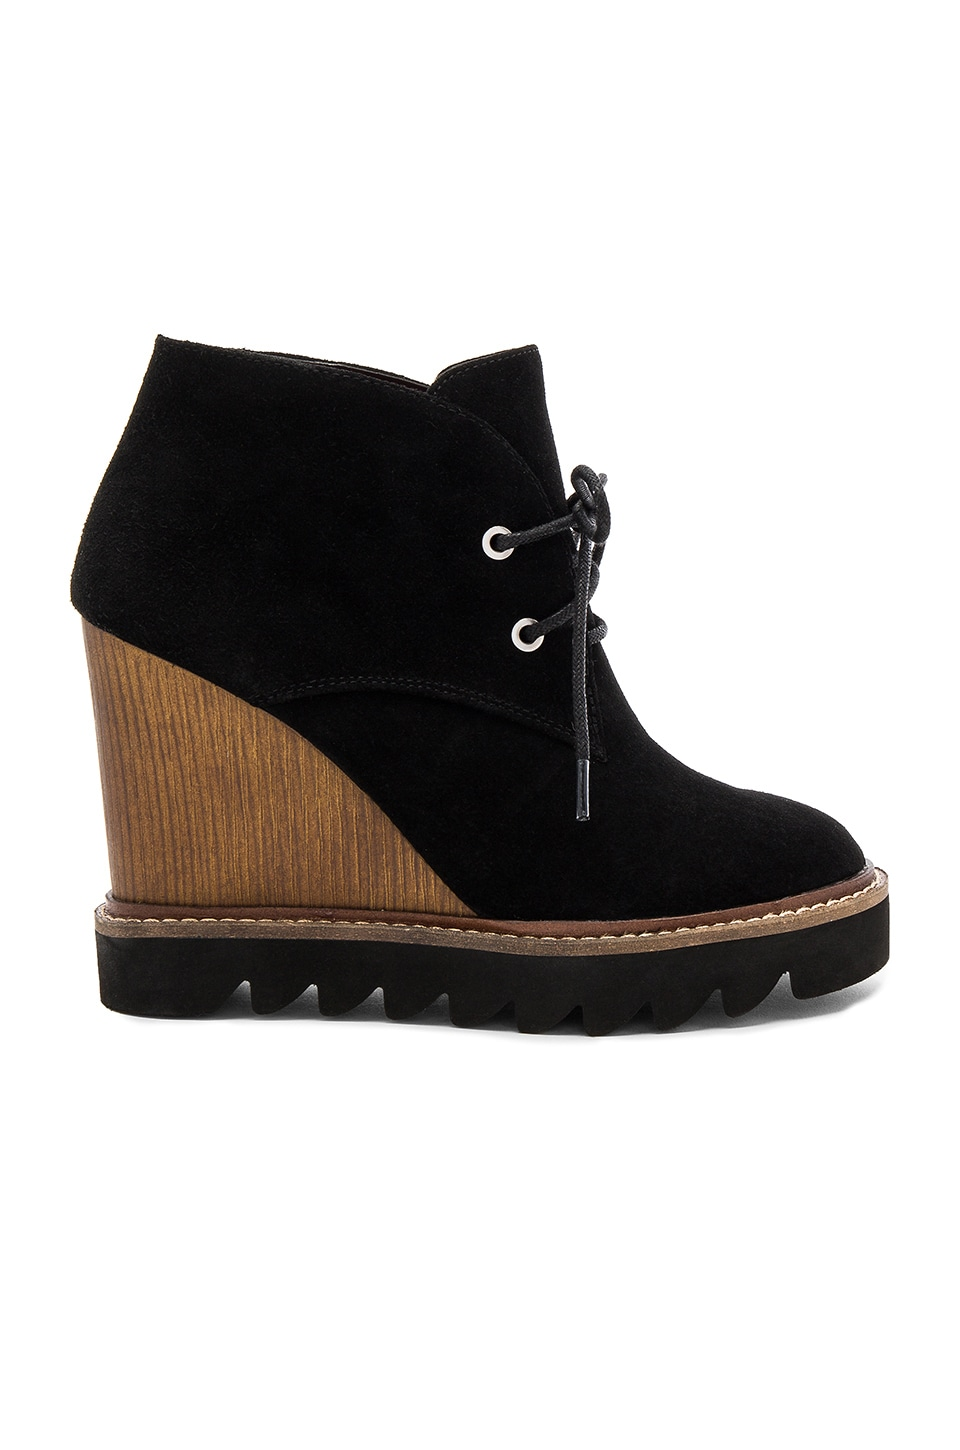 BCBGeneration Nariska Wedge Bootie in Black